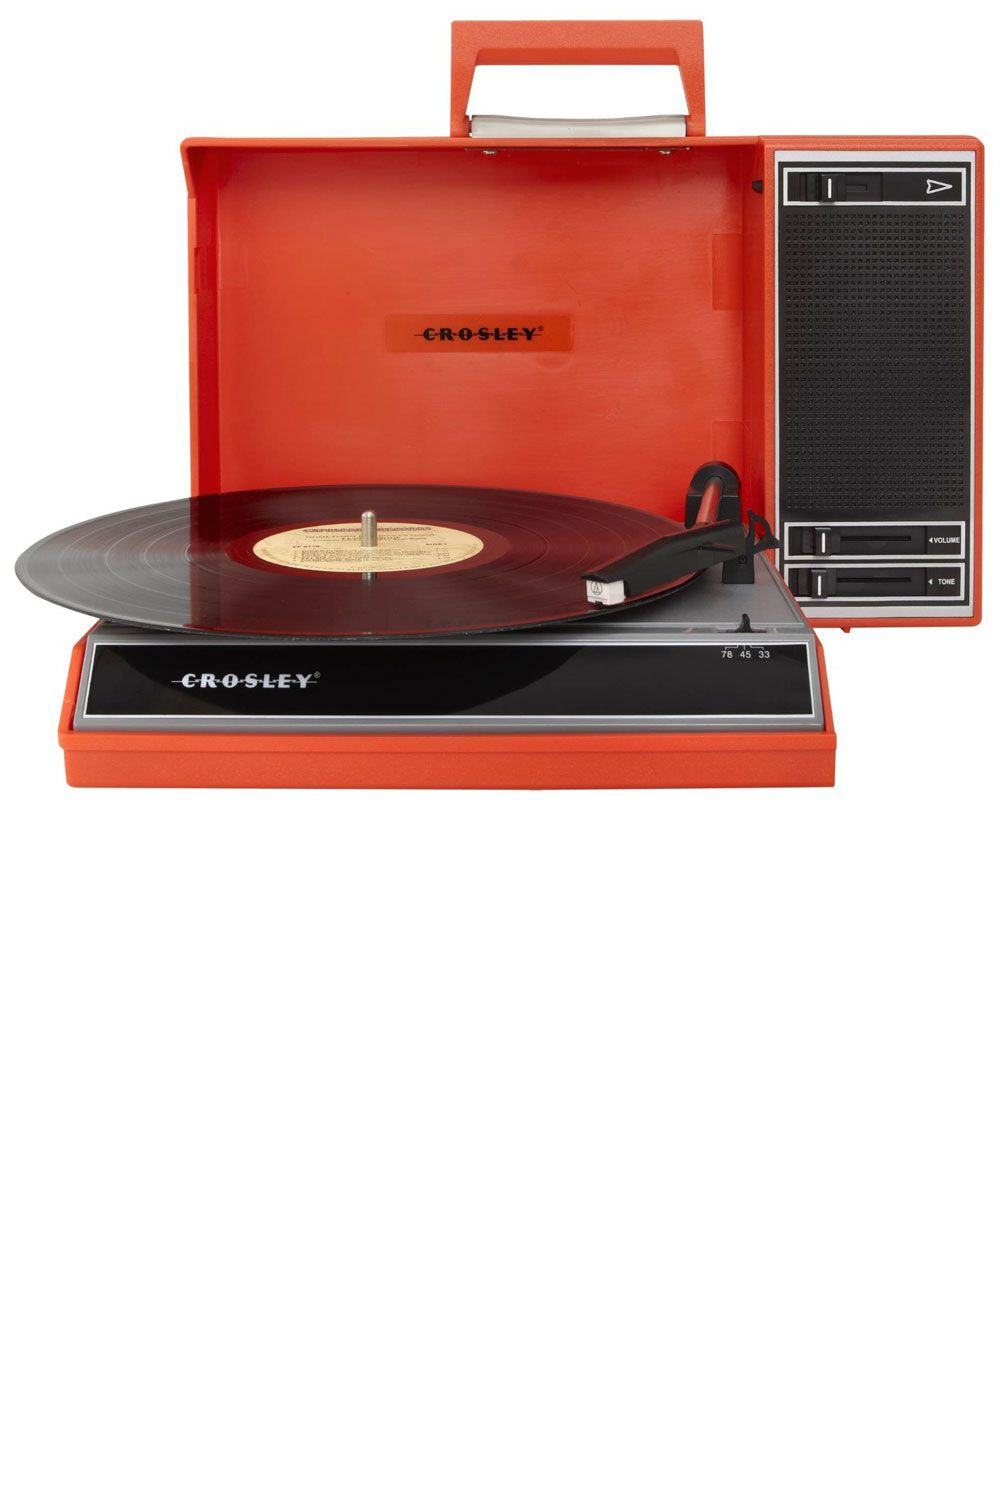 """<p><strong>Crosley</strong> turntable, $149.95, <a href=""""http://www.crosleyradio.com/turntables/product-details?productkey=CR6016A&model=CR6016A-RE"""" target=""""_blank"""">crosleyradio.com</a>.</p>"""